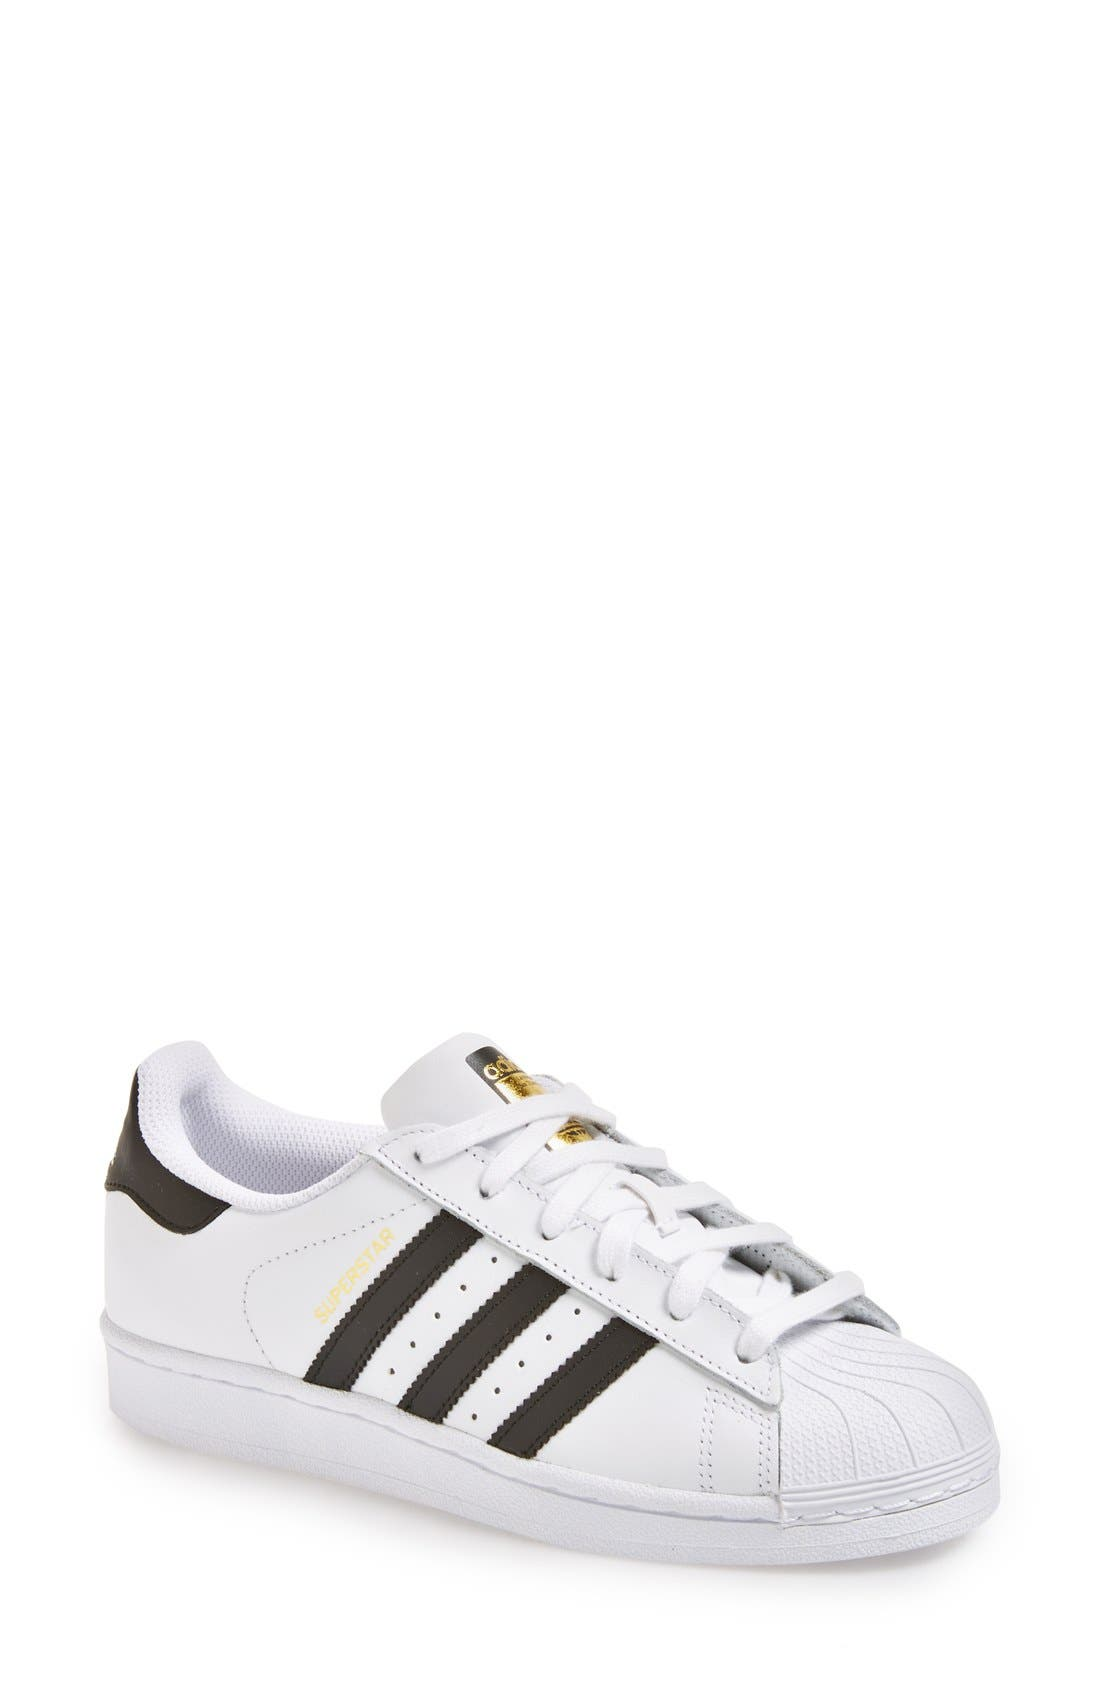 8f309d651b1 adidas superstar platform on sale   OFF68% Discounts